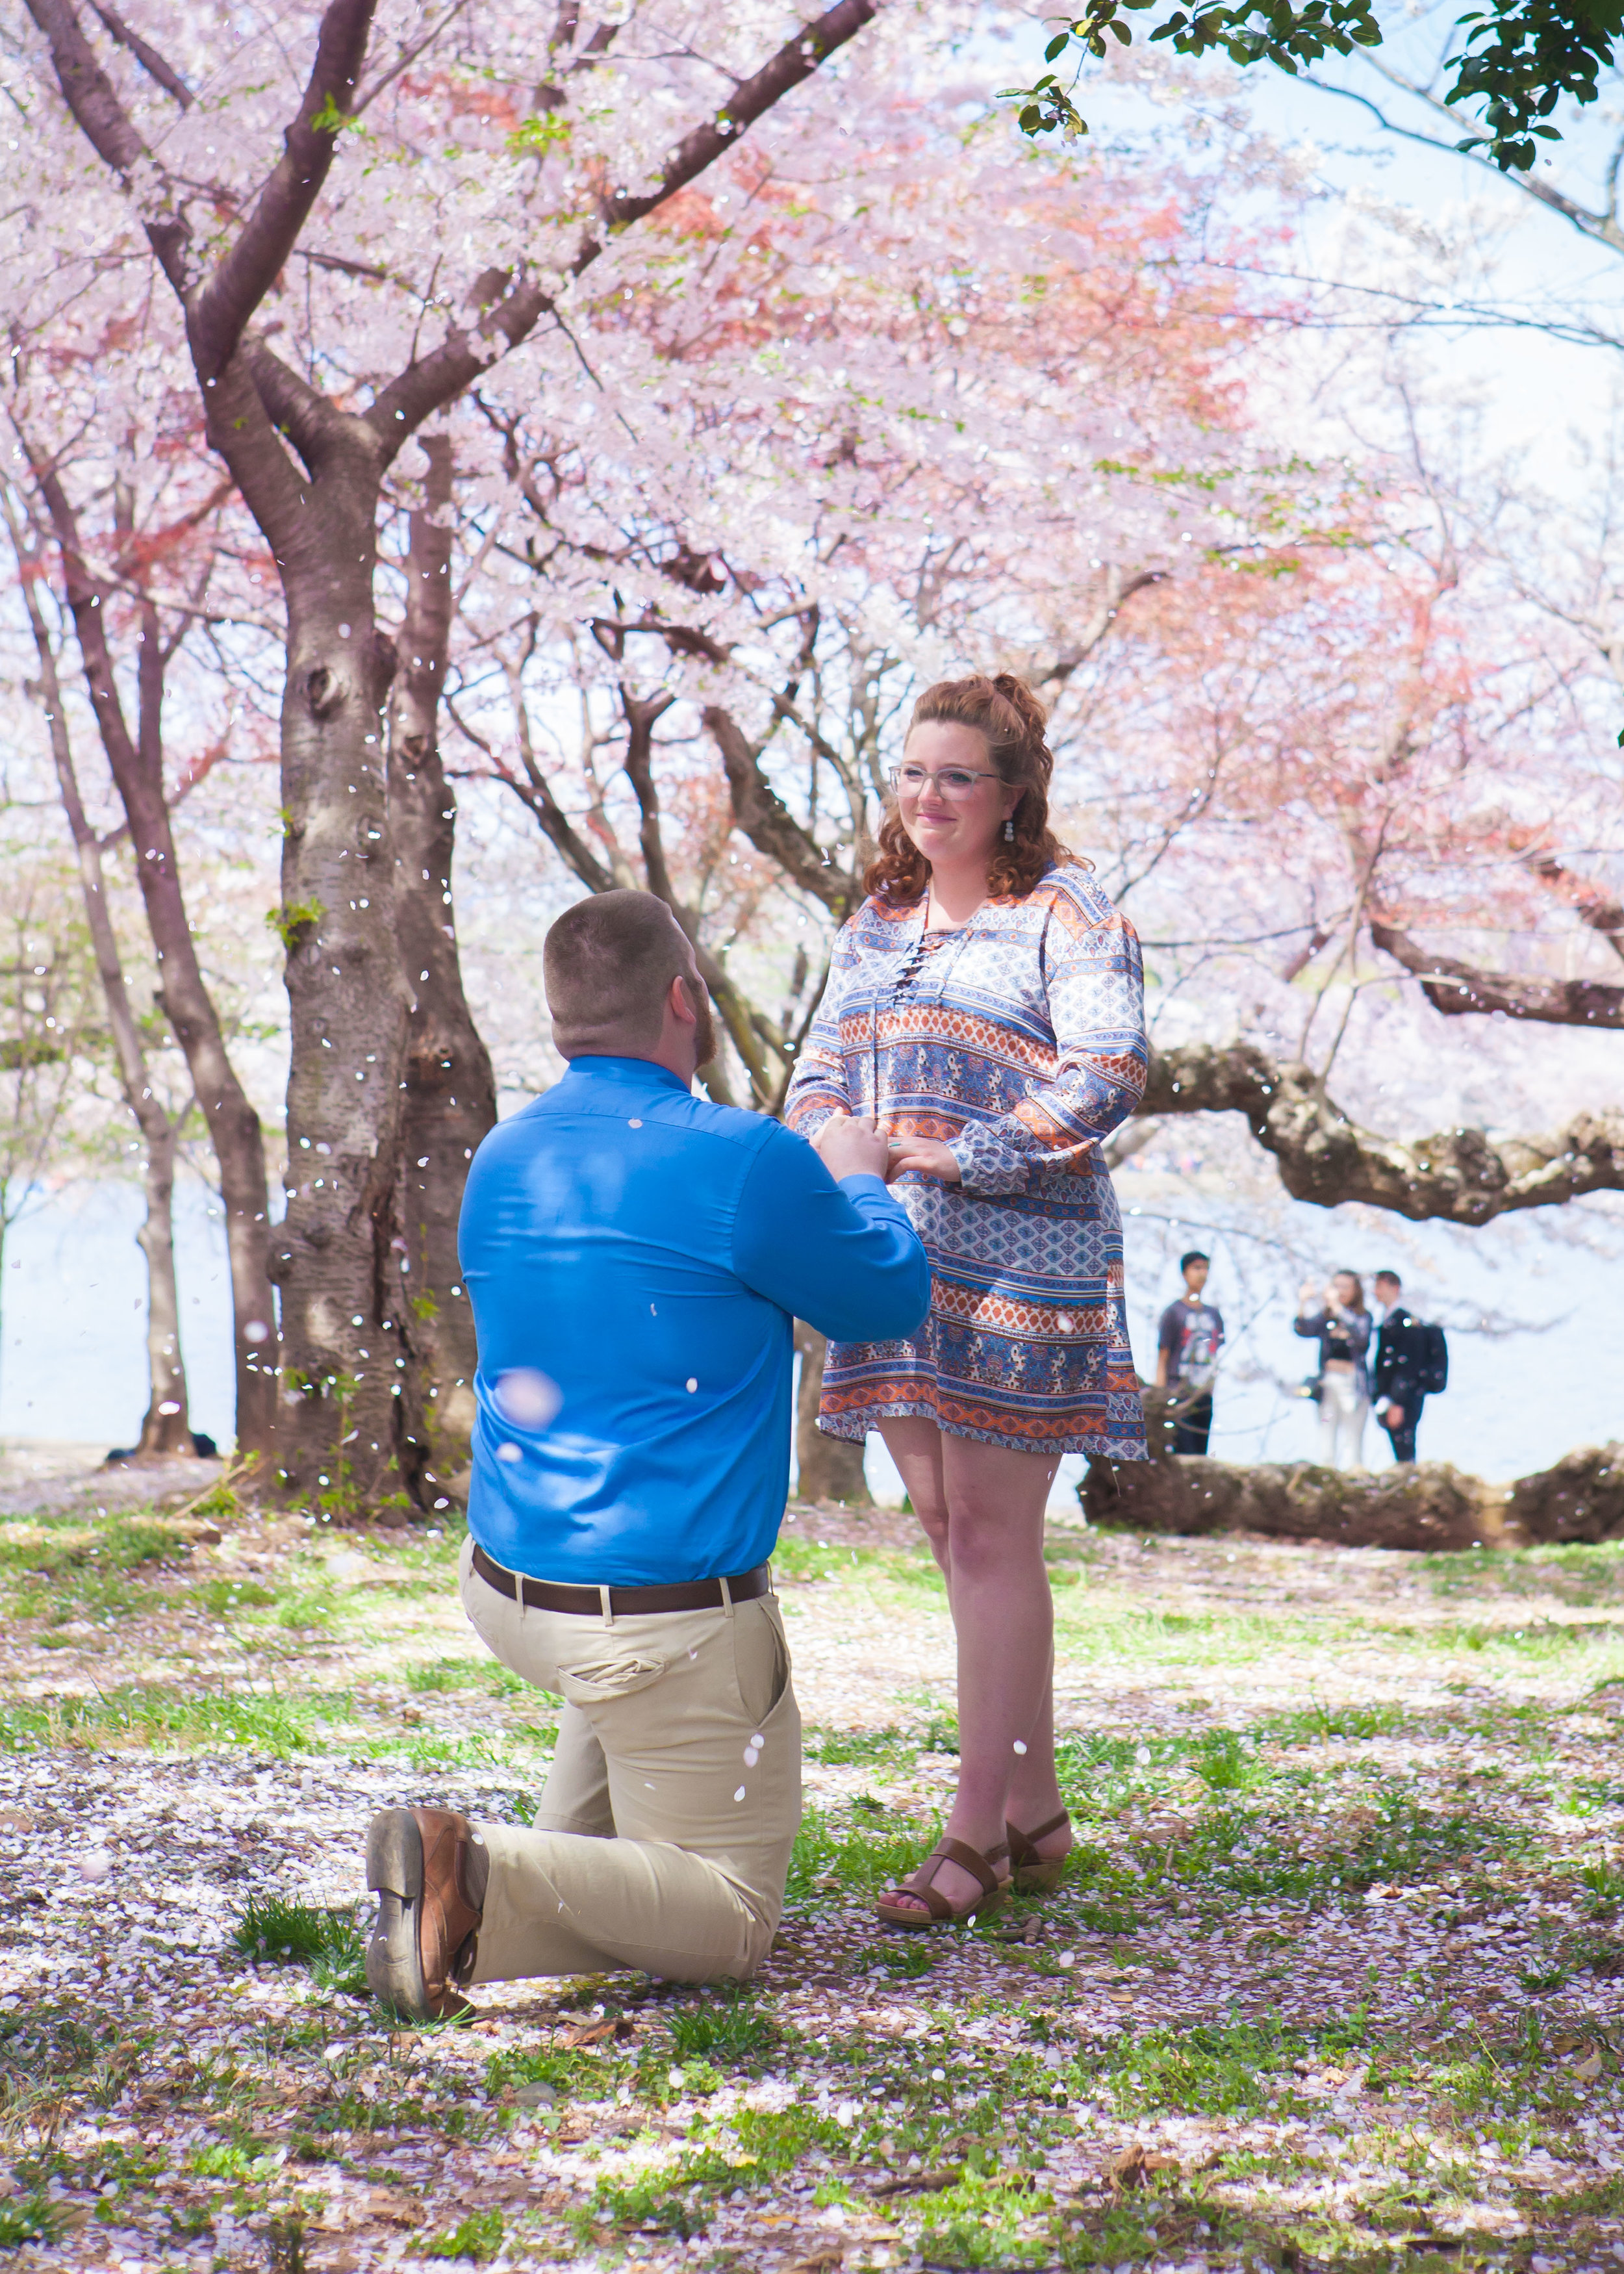 Surprise Proposal At The Cherry Blossom Festival Lincoln Photography,3 Bedroom Houses For Rent In Omaha Nebraska